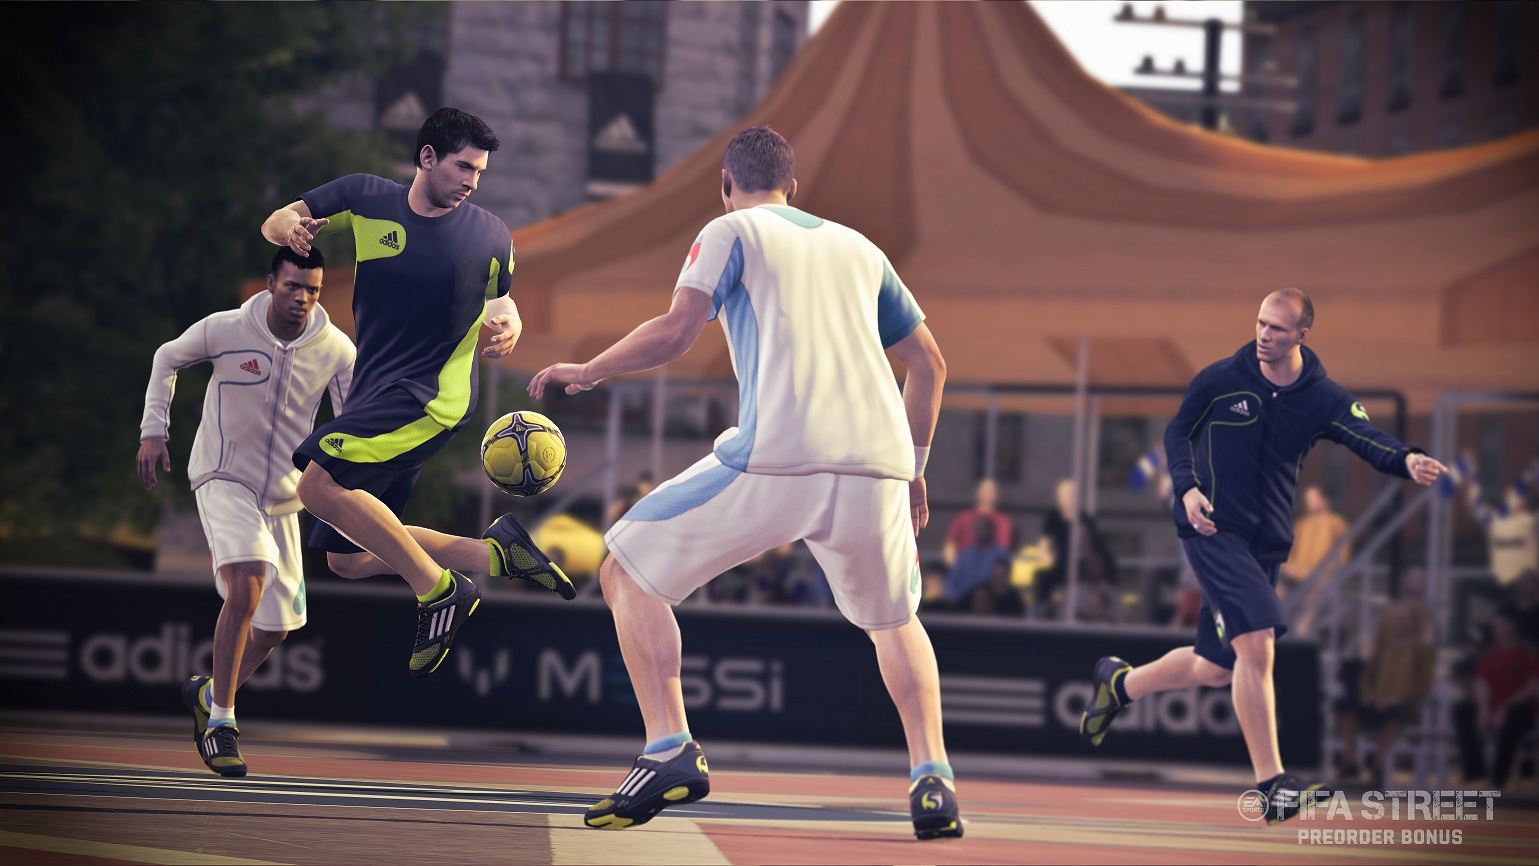 FIFA Street – Some Urban Announcement Images